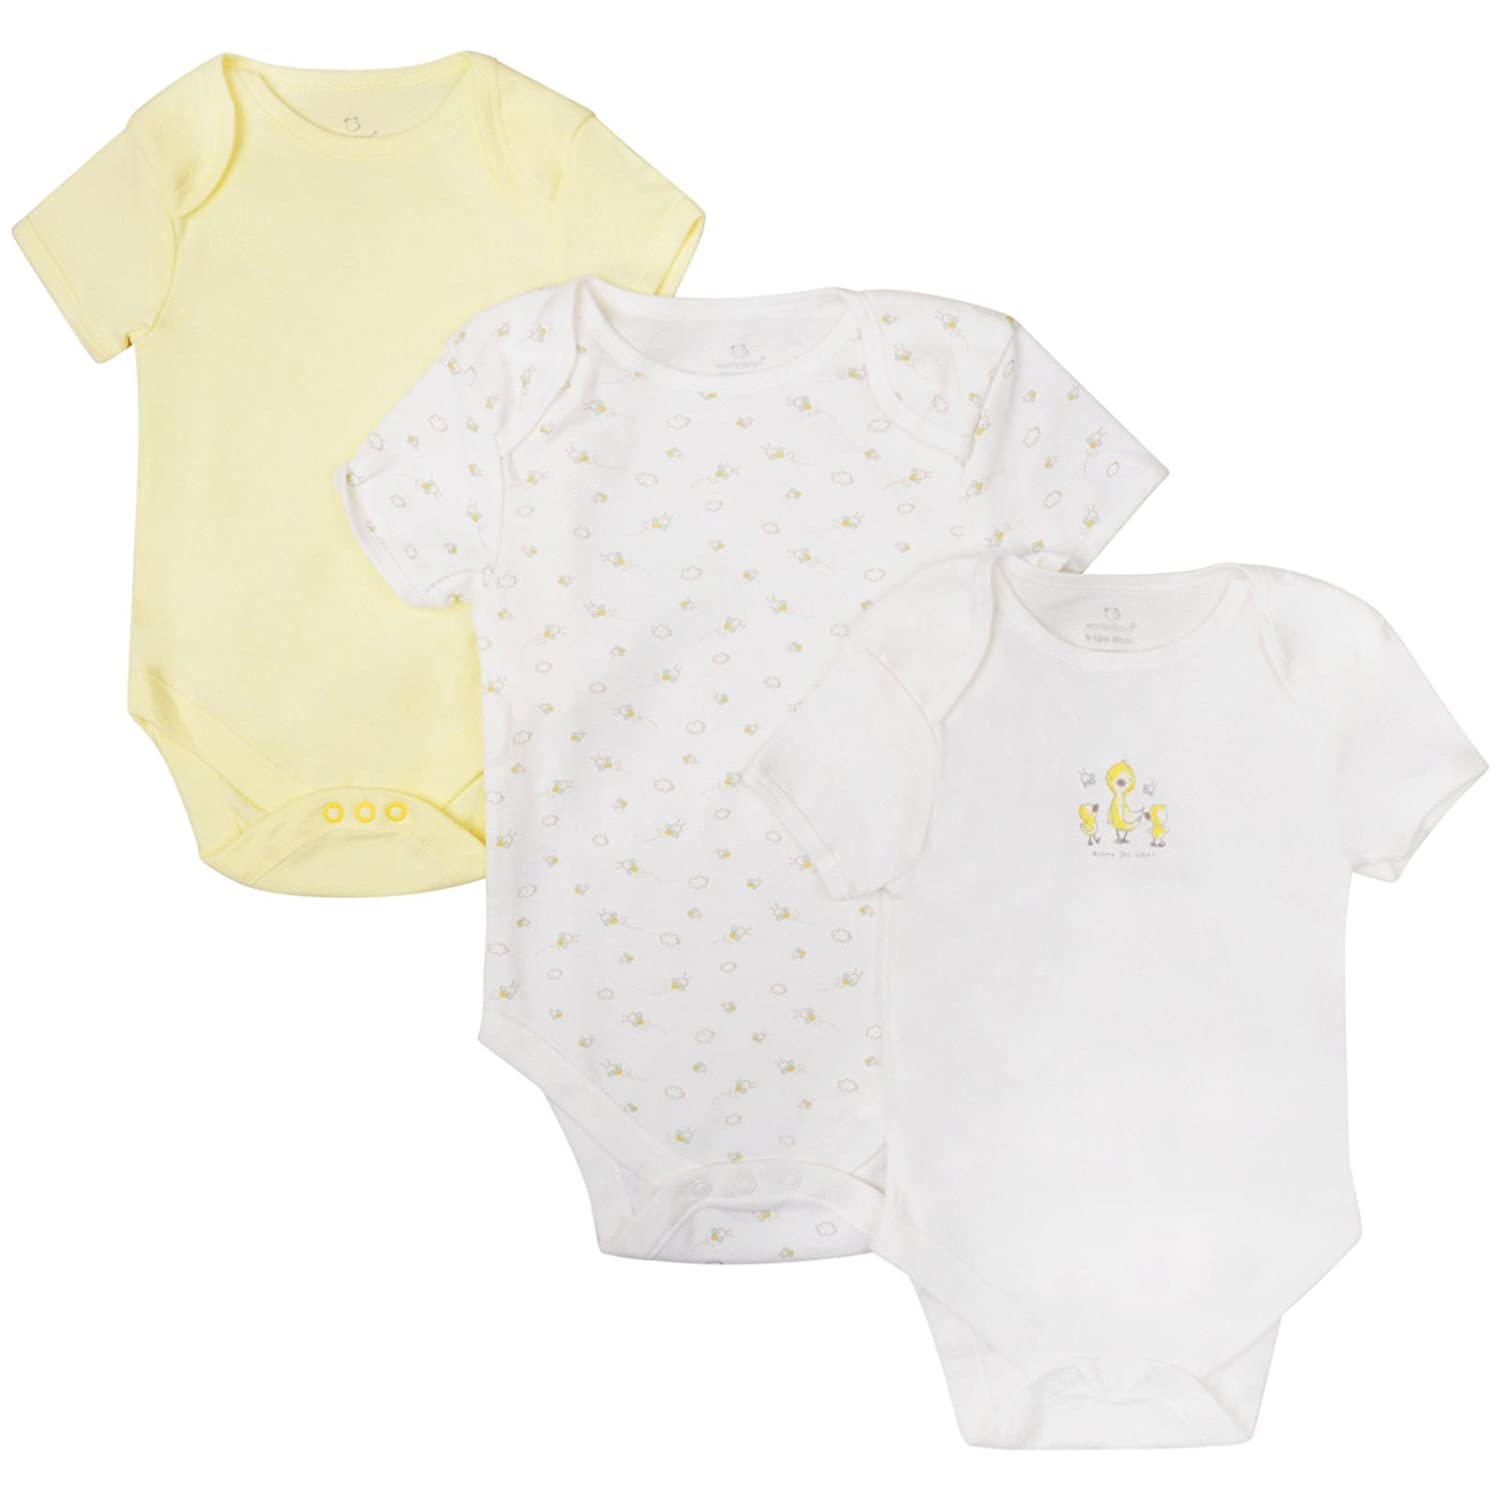 Ex UK Store Baby 3 Pack Body Suits Boys Girls Short Sleeve Ex Store Lemon Cream Vests